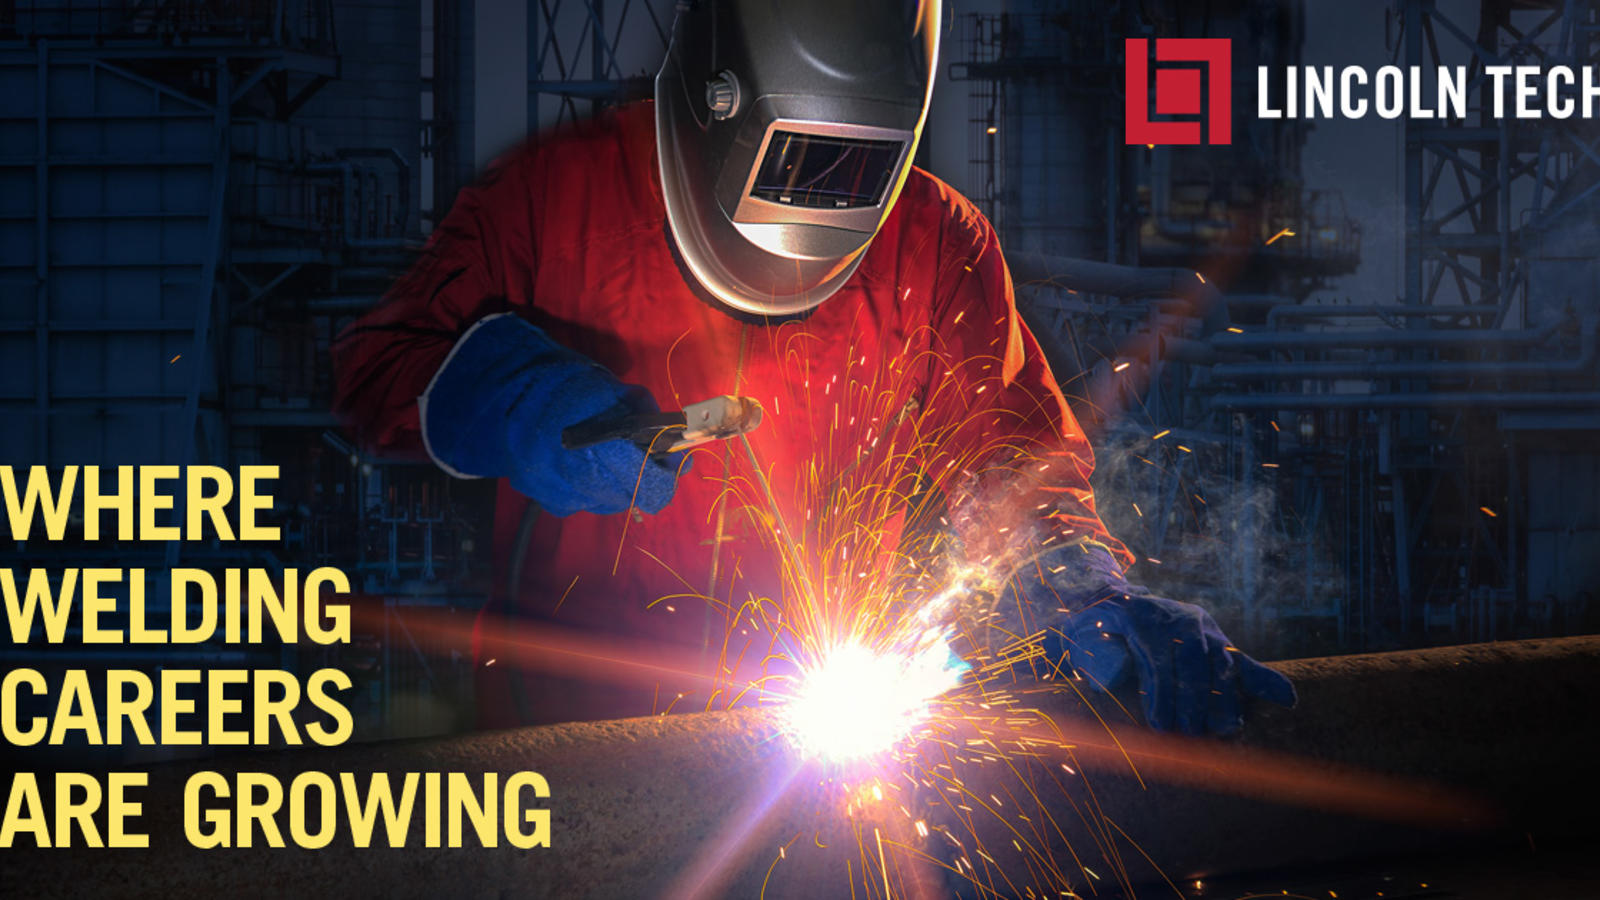 Job Outlook For Welders Welding Careers Are Growing In Many Us States